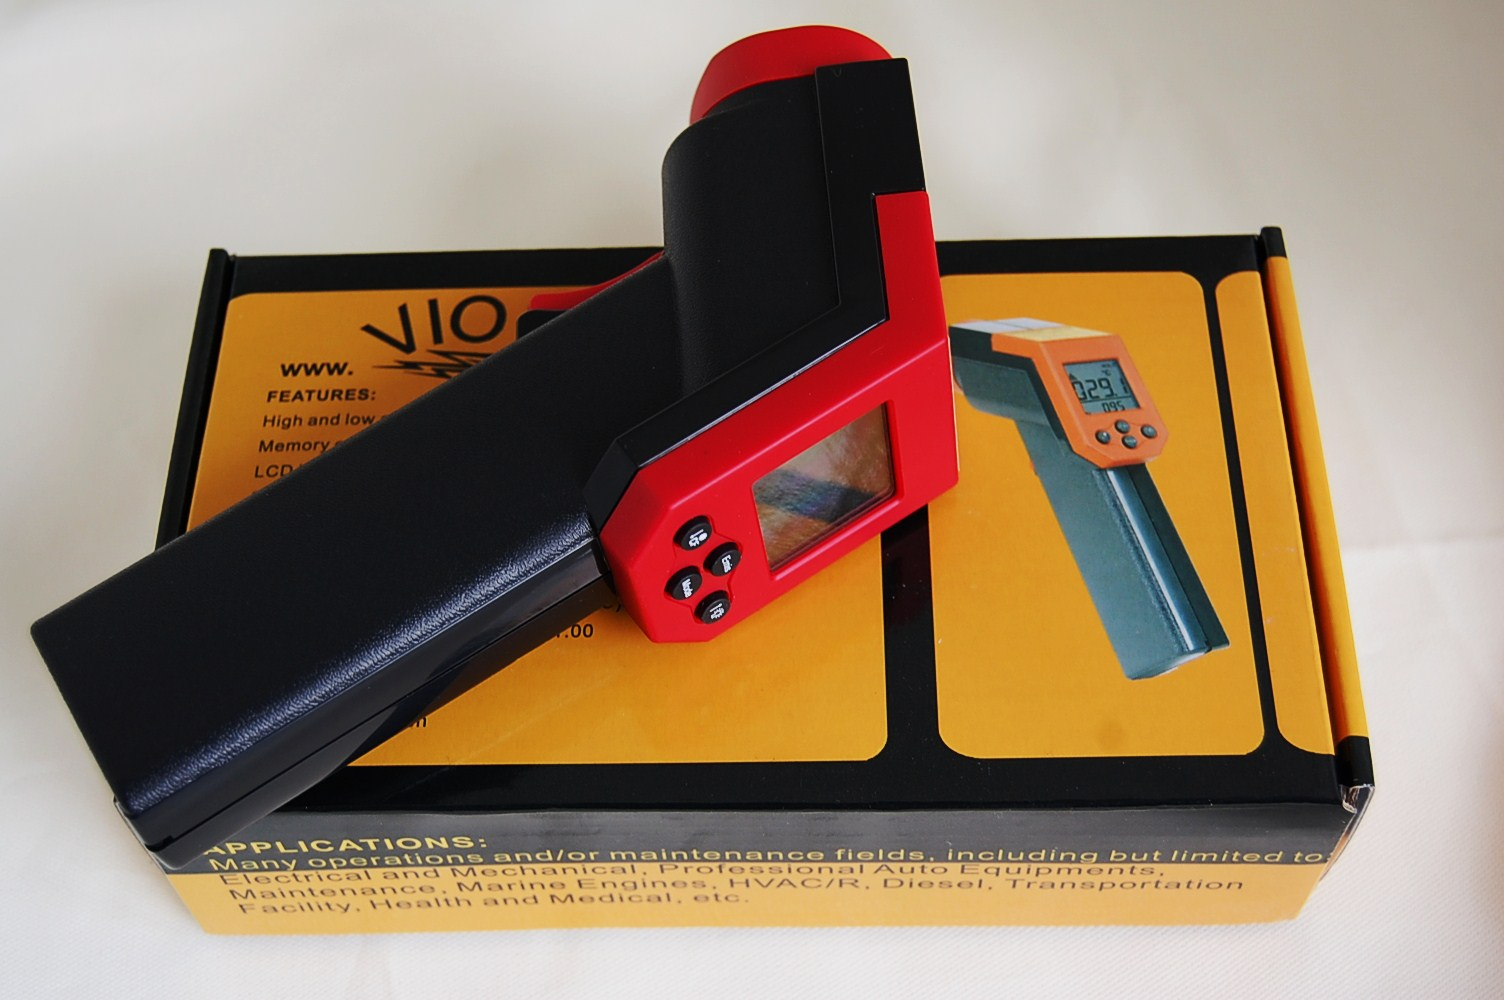 #B8131A No Touch Infrared Digital Thermometer Technician HVAC  Best 6793 Tools Needed For Hvac Technician photos with 1504x1000 px on helpvideos.info - Air Conditioners, Air Coolers and more